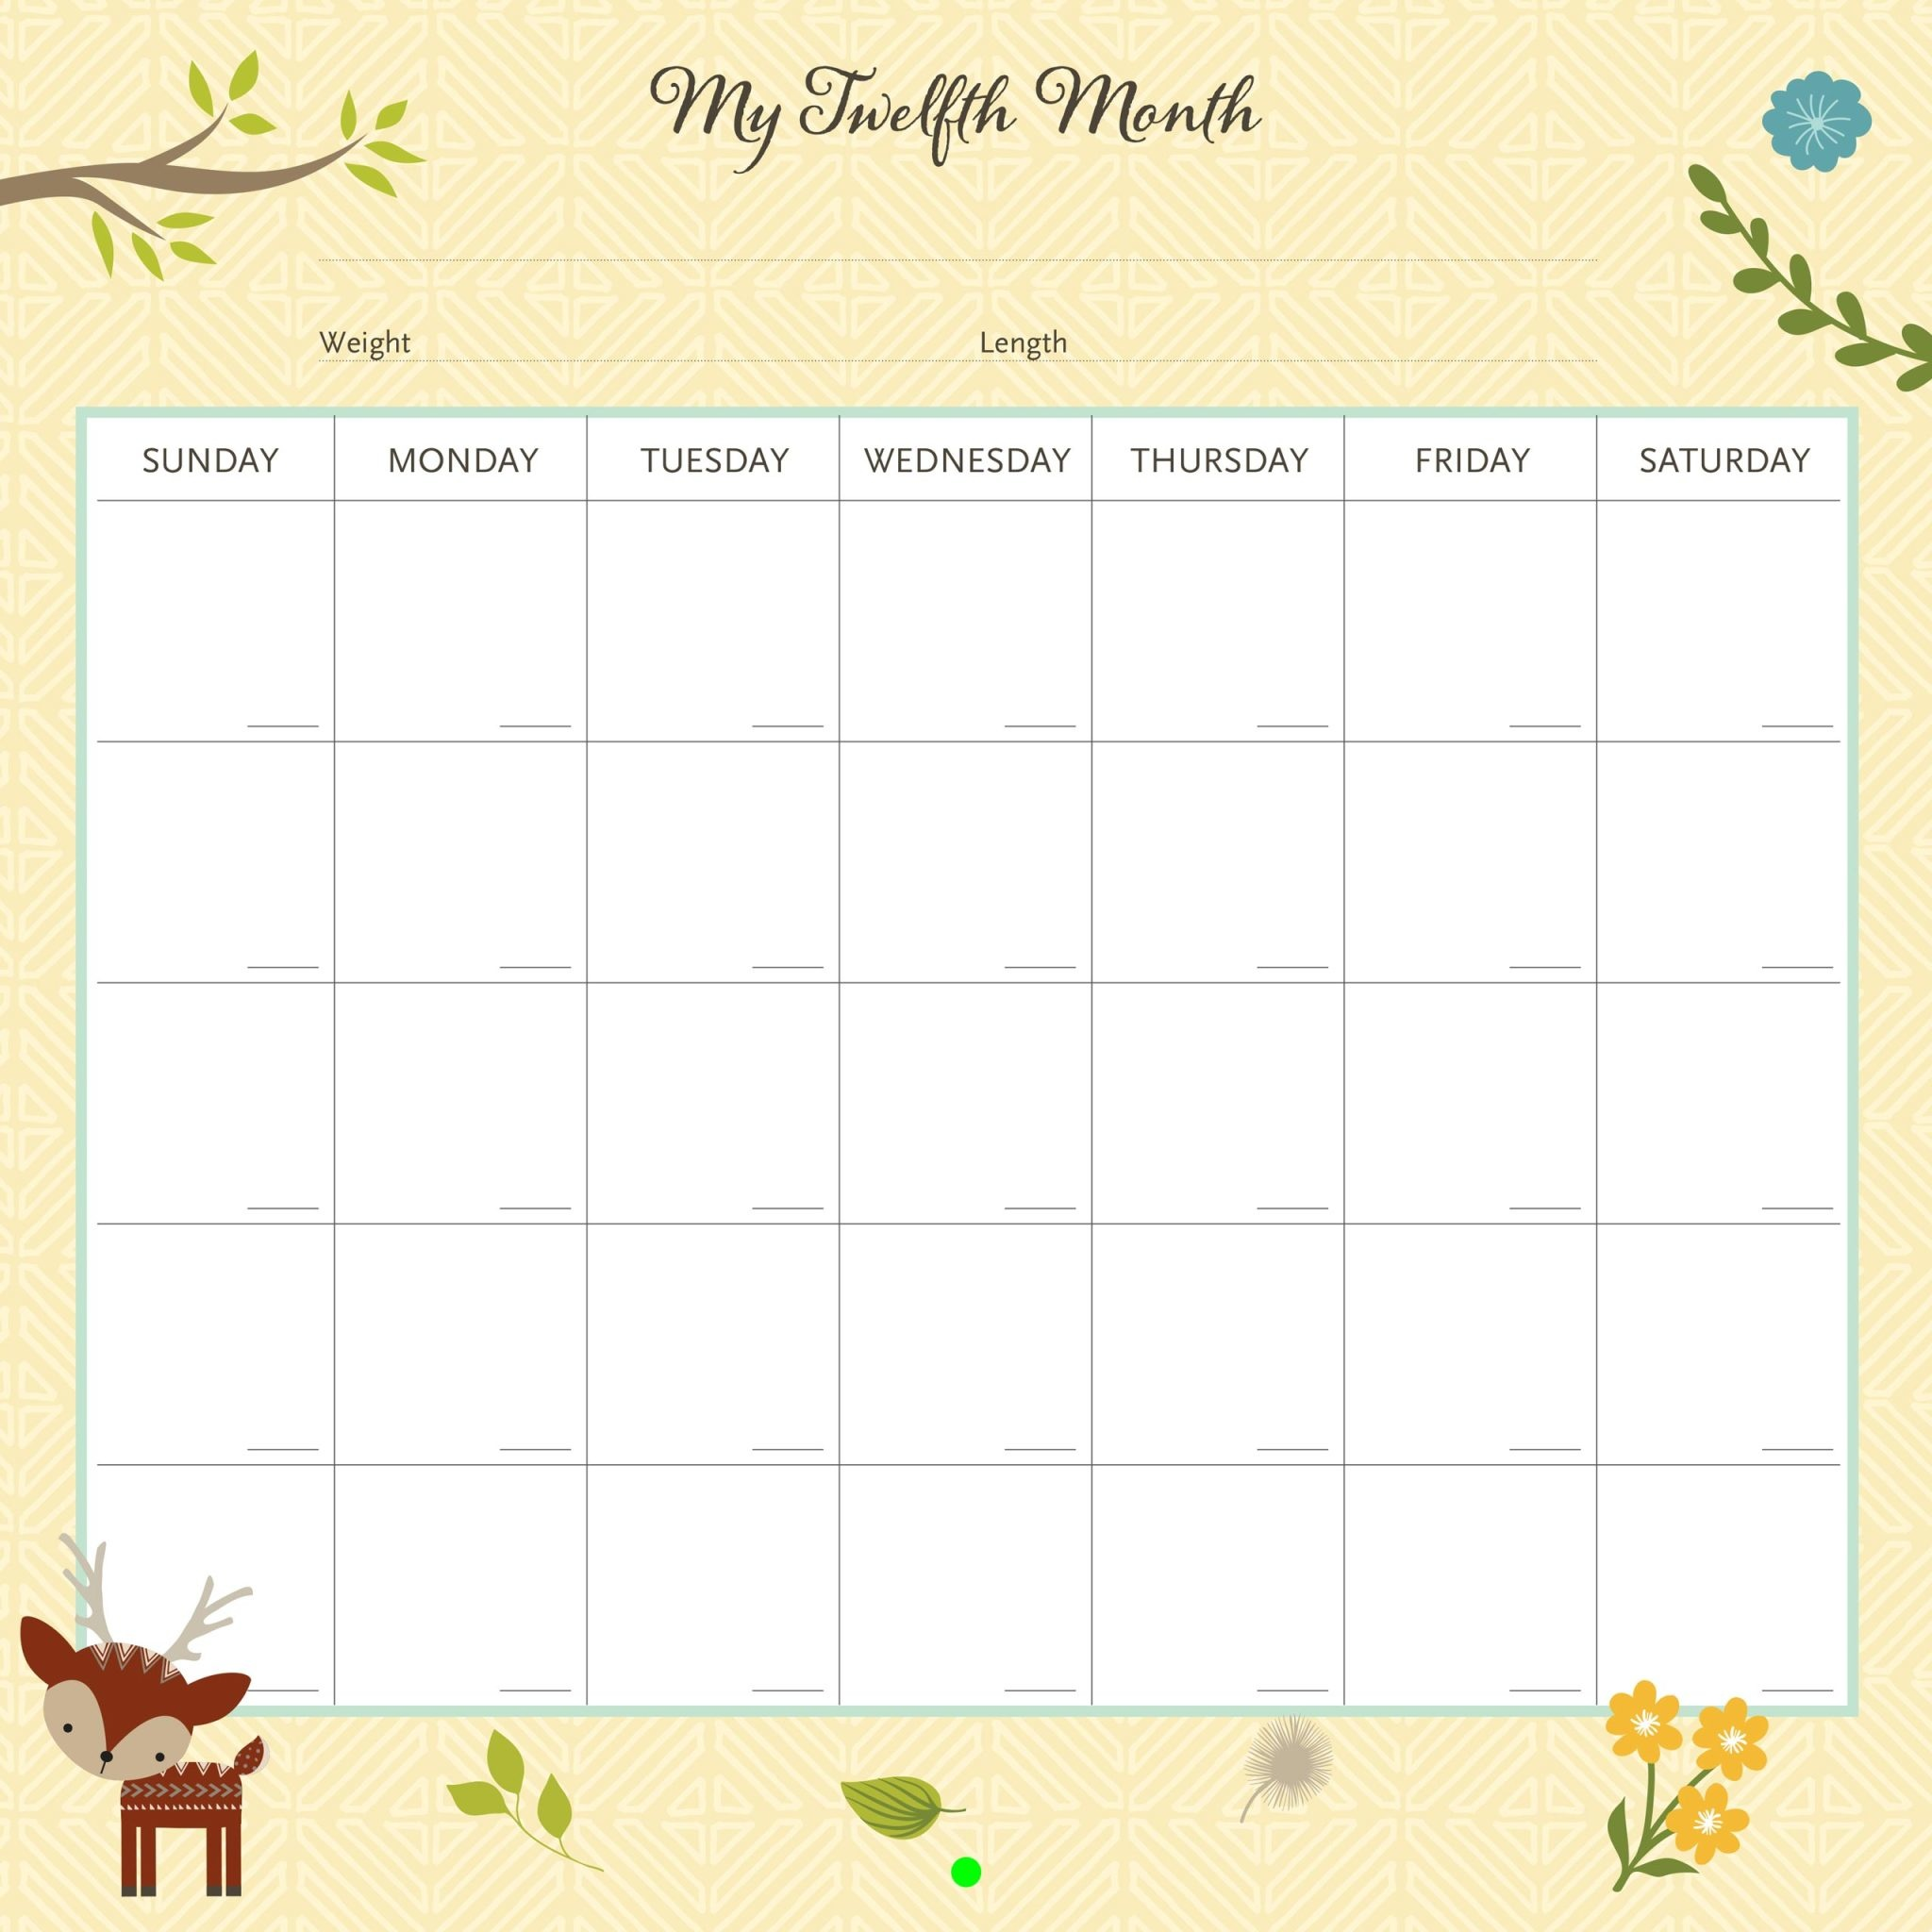 Fleurish Home My Life as a Baby: First-Year Calendar - Woodland Friends